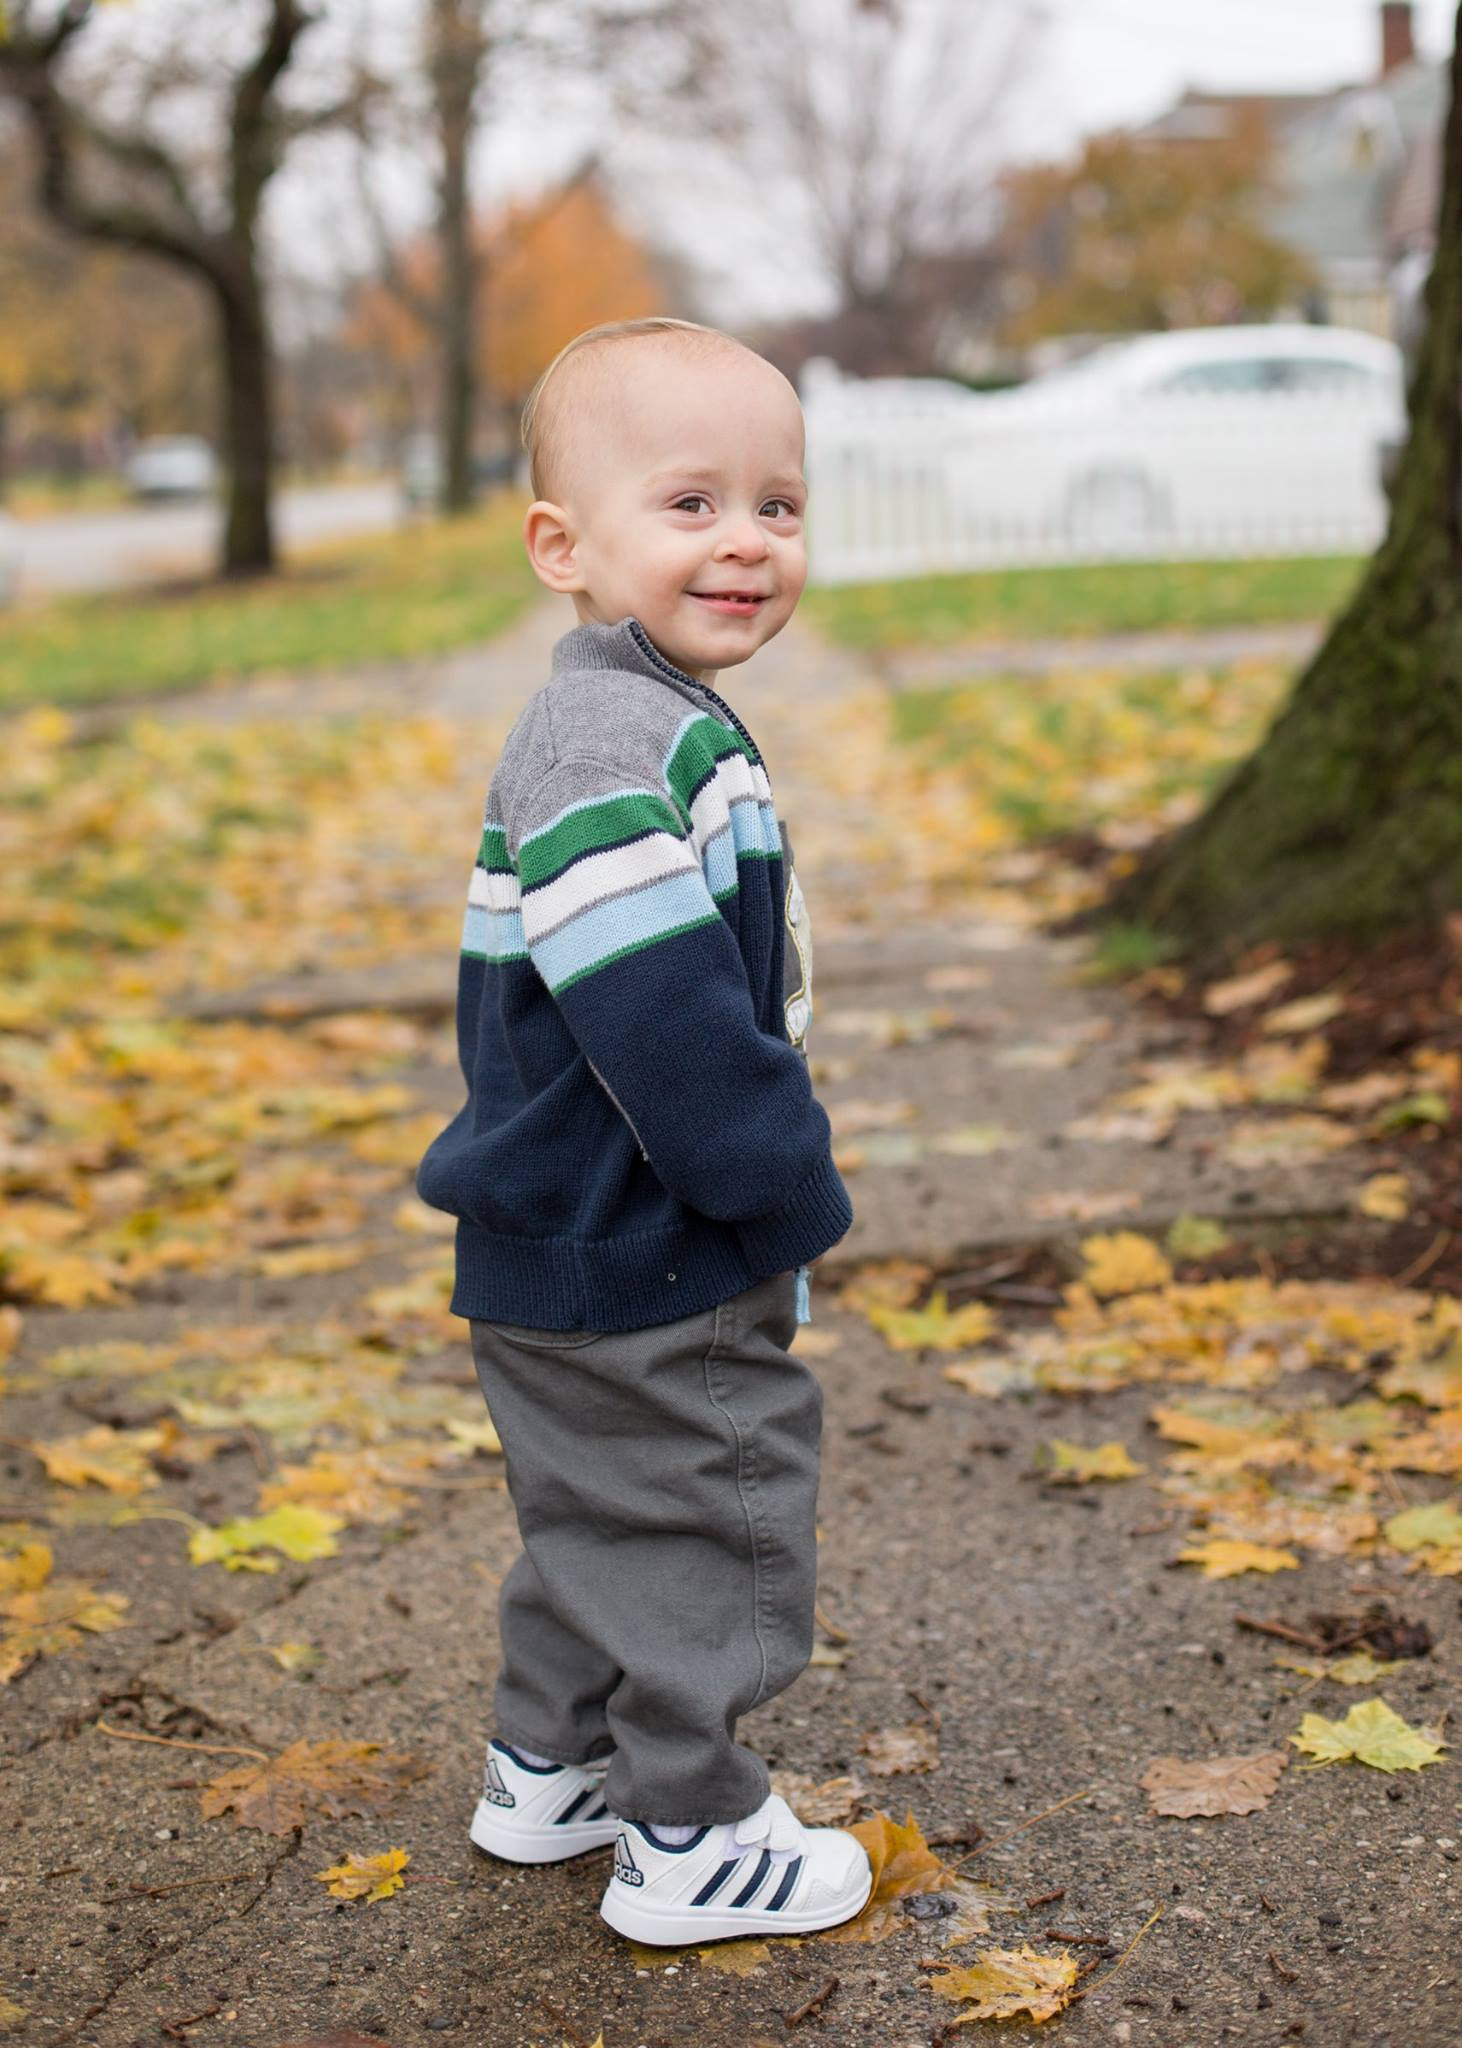 little-boy-walking-through-autumn-leaves